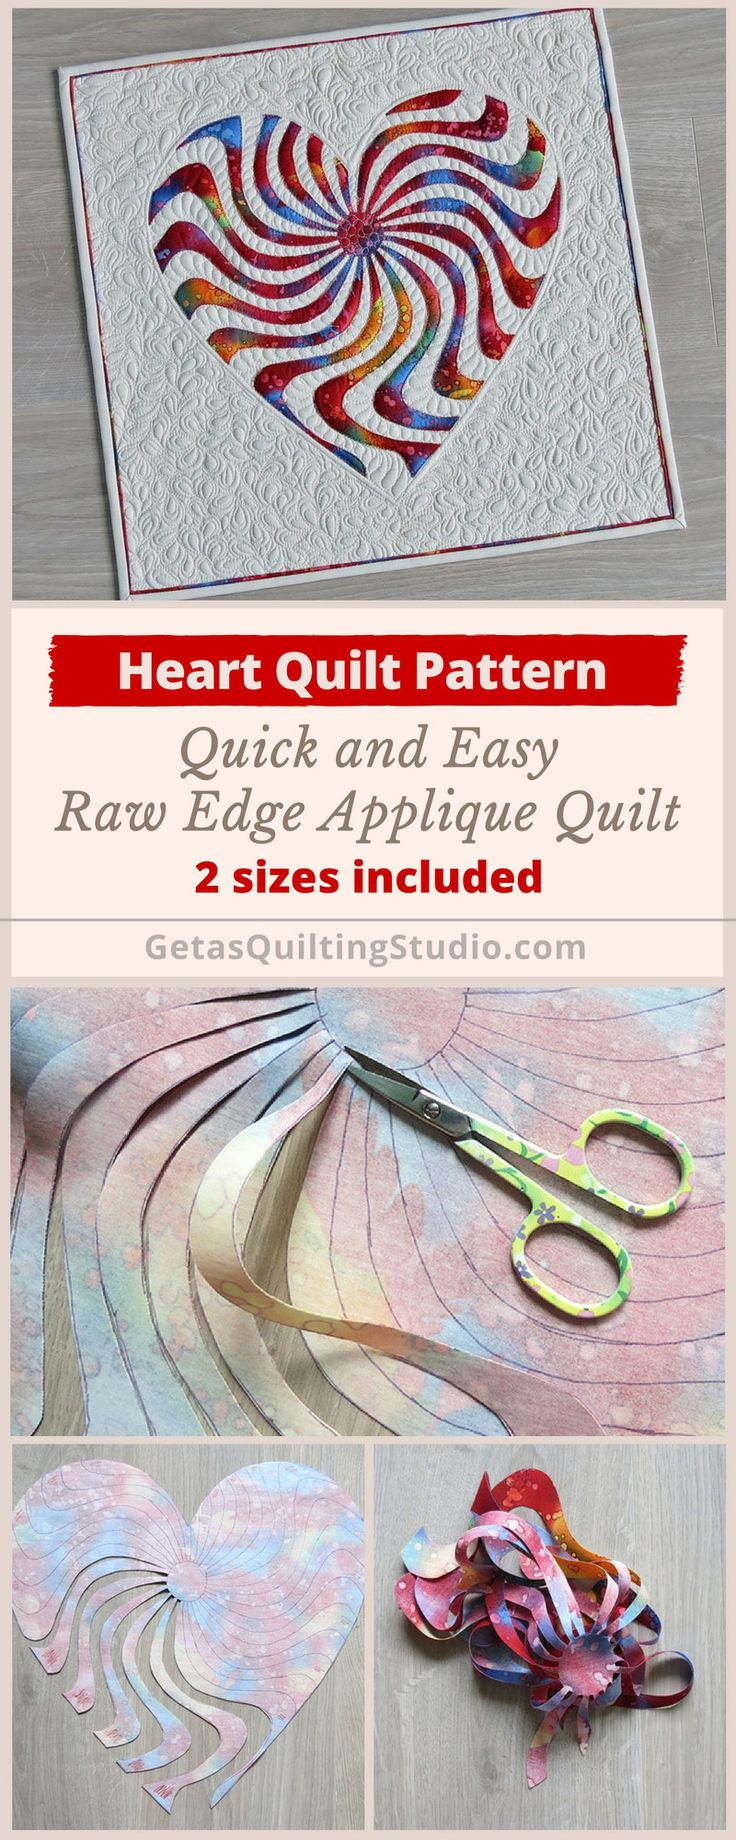 Applique heart quilt pattern -  quick and easy technique for a small raw edge applique quilt. 2 sizes are included. via @getagrama